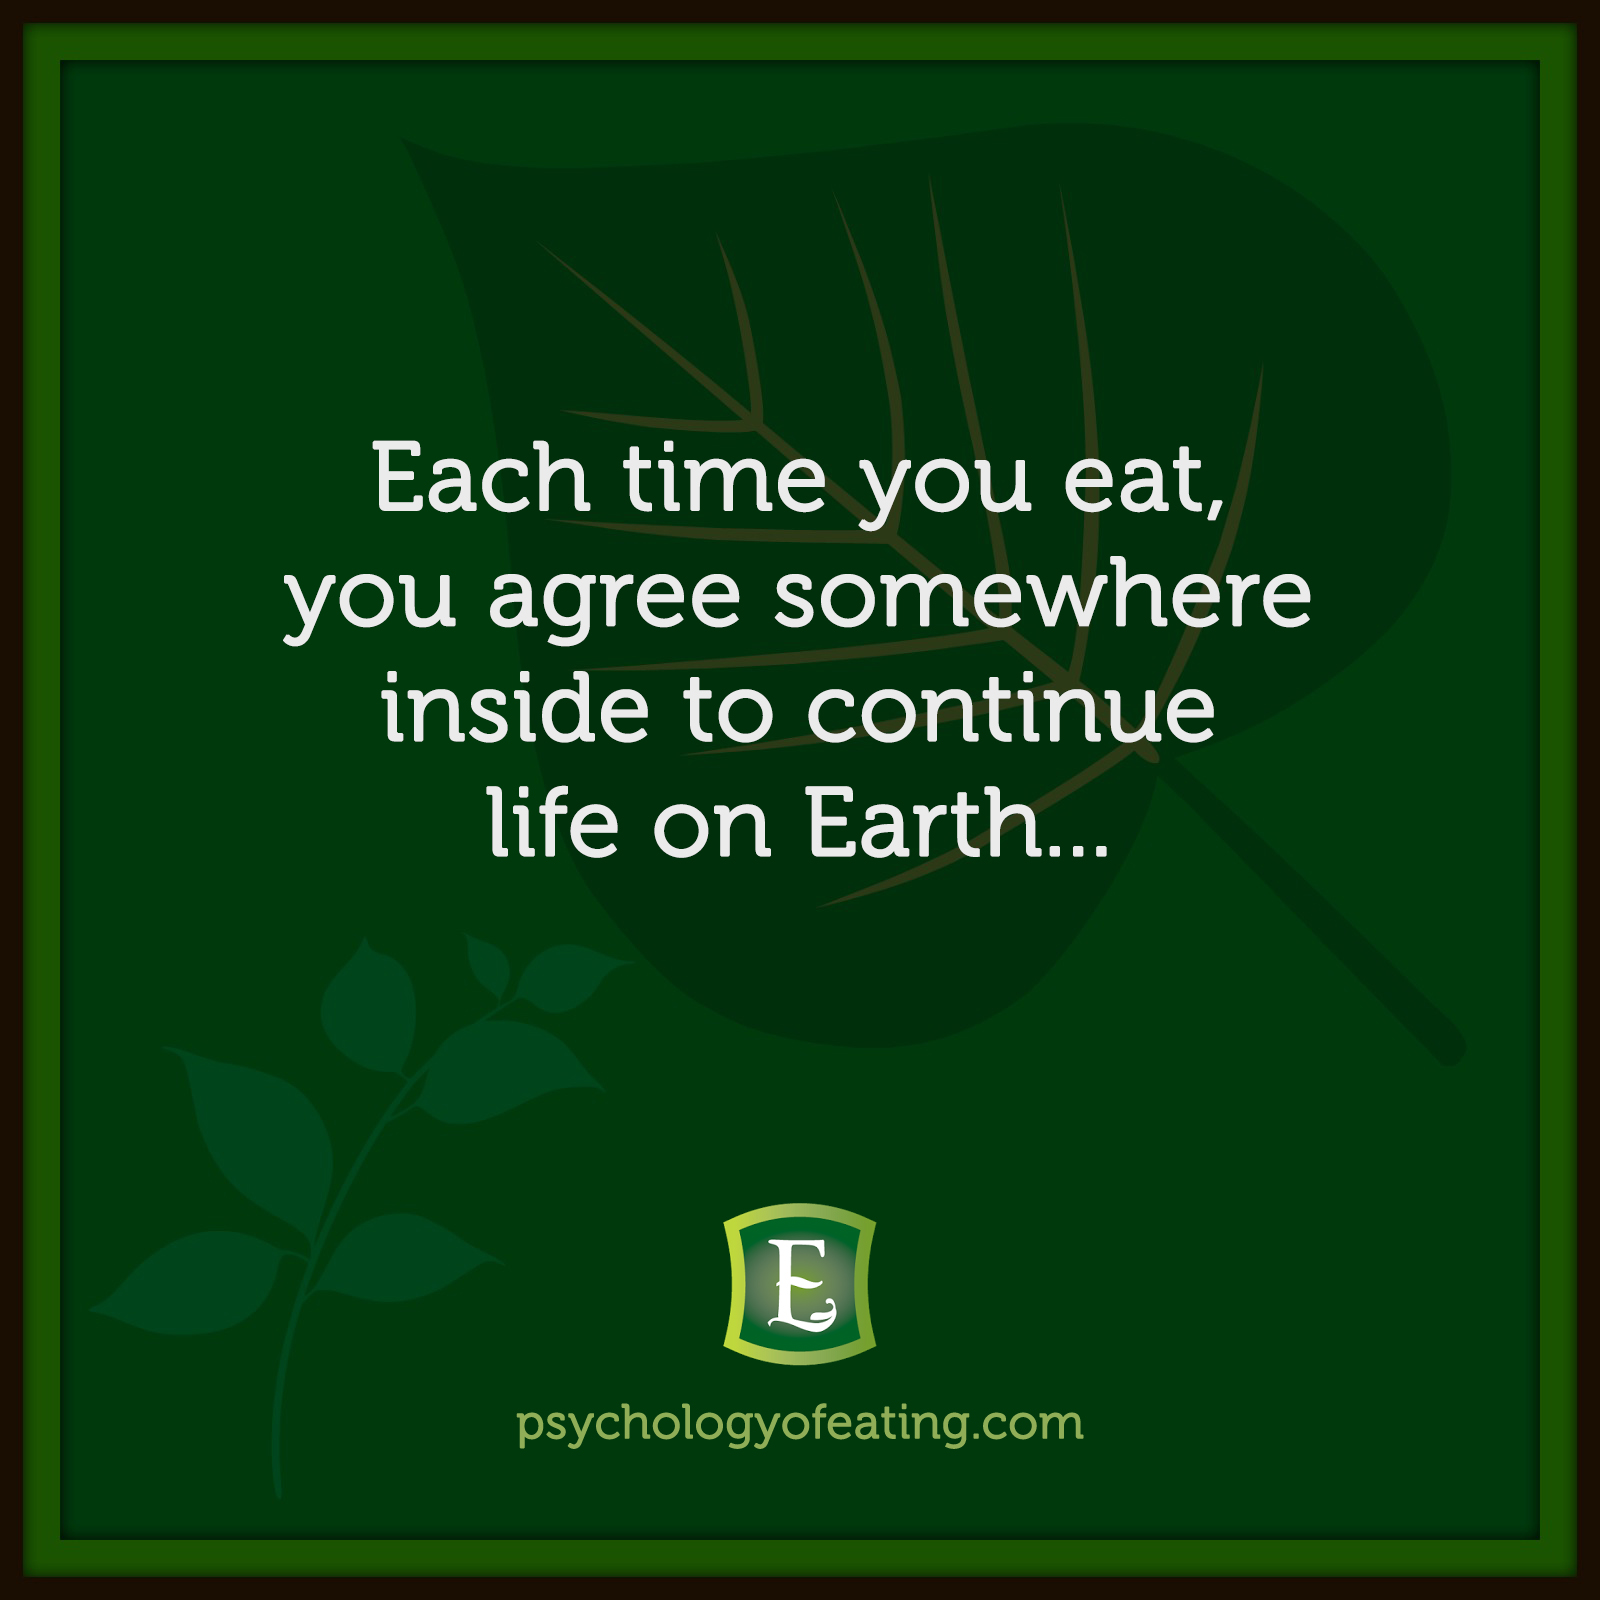 Each time you eat, you agree somewhere inside to continue life on Earth… #health #nutrition #eatingpsychology #IPE